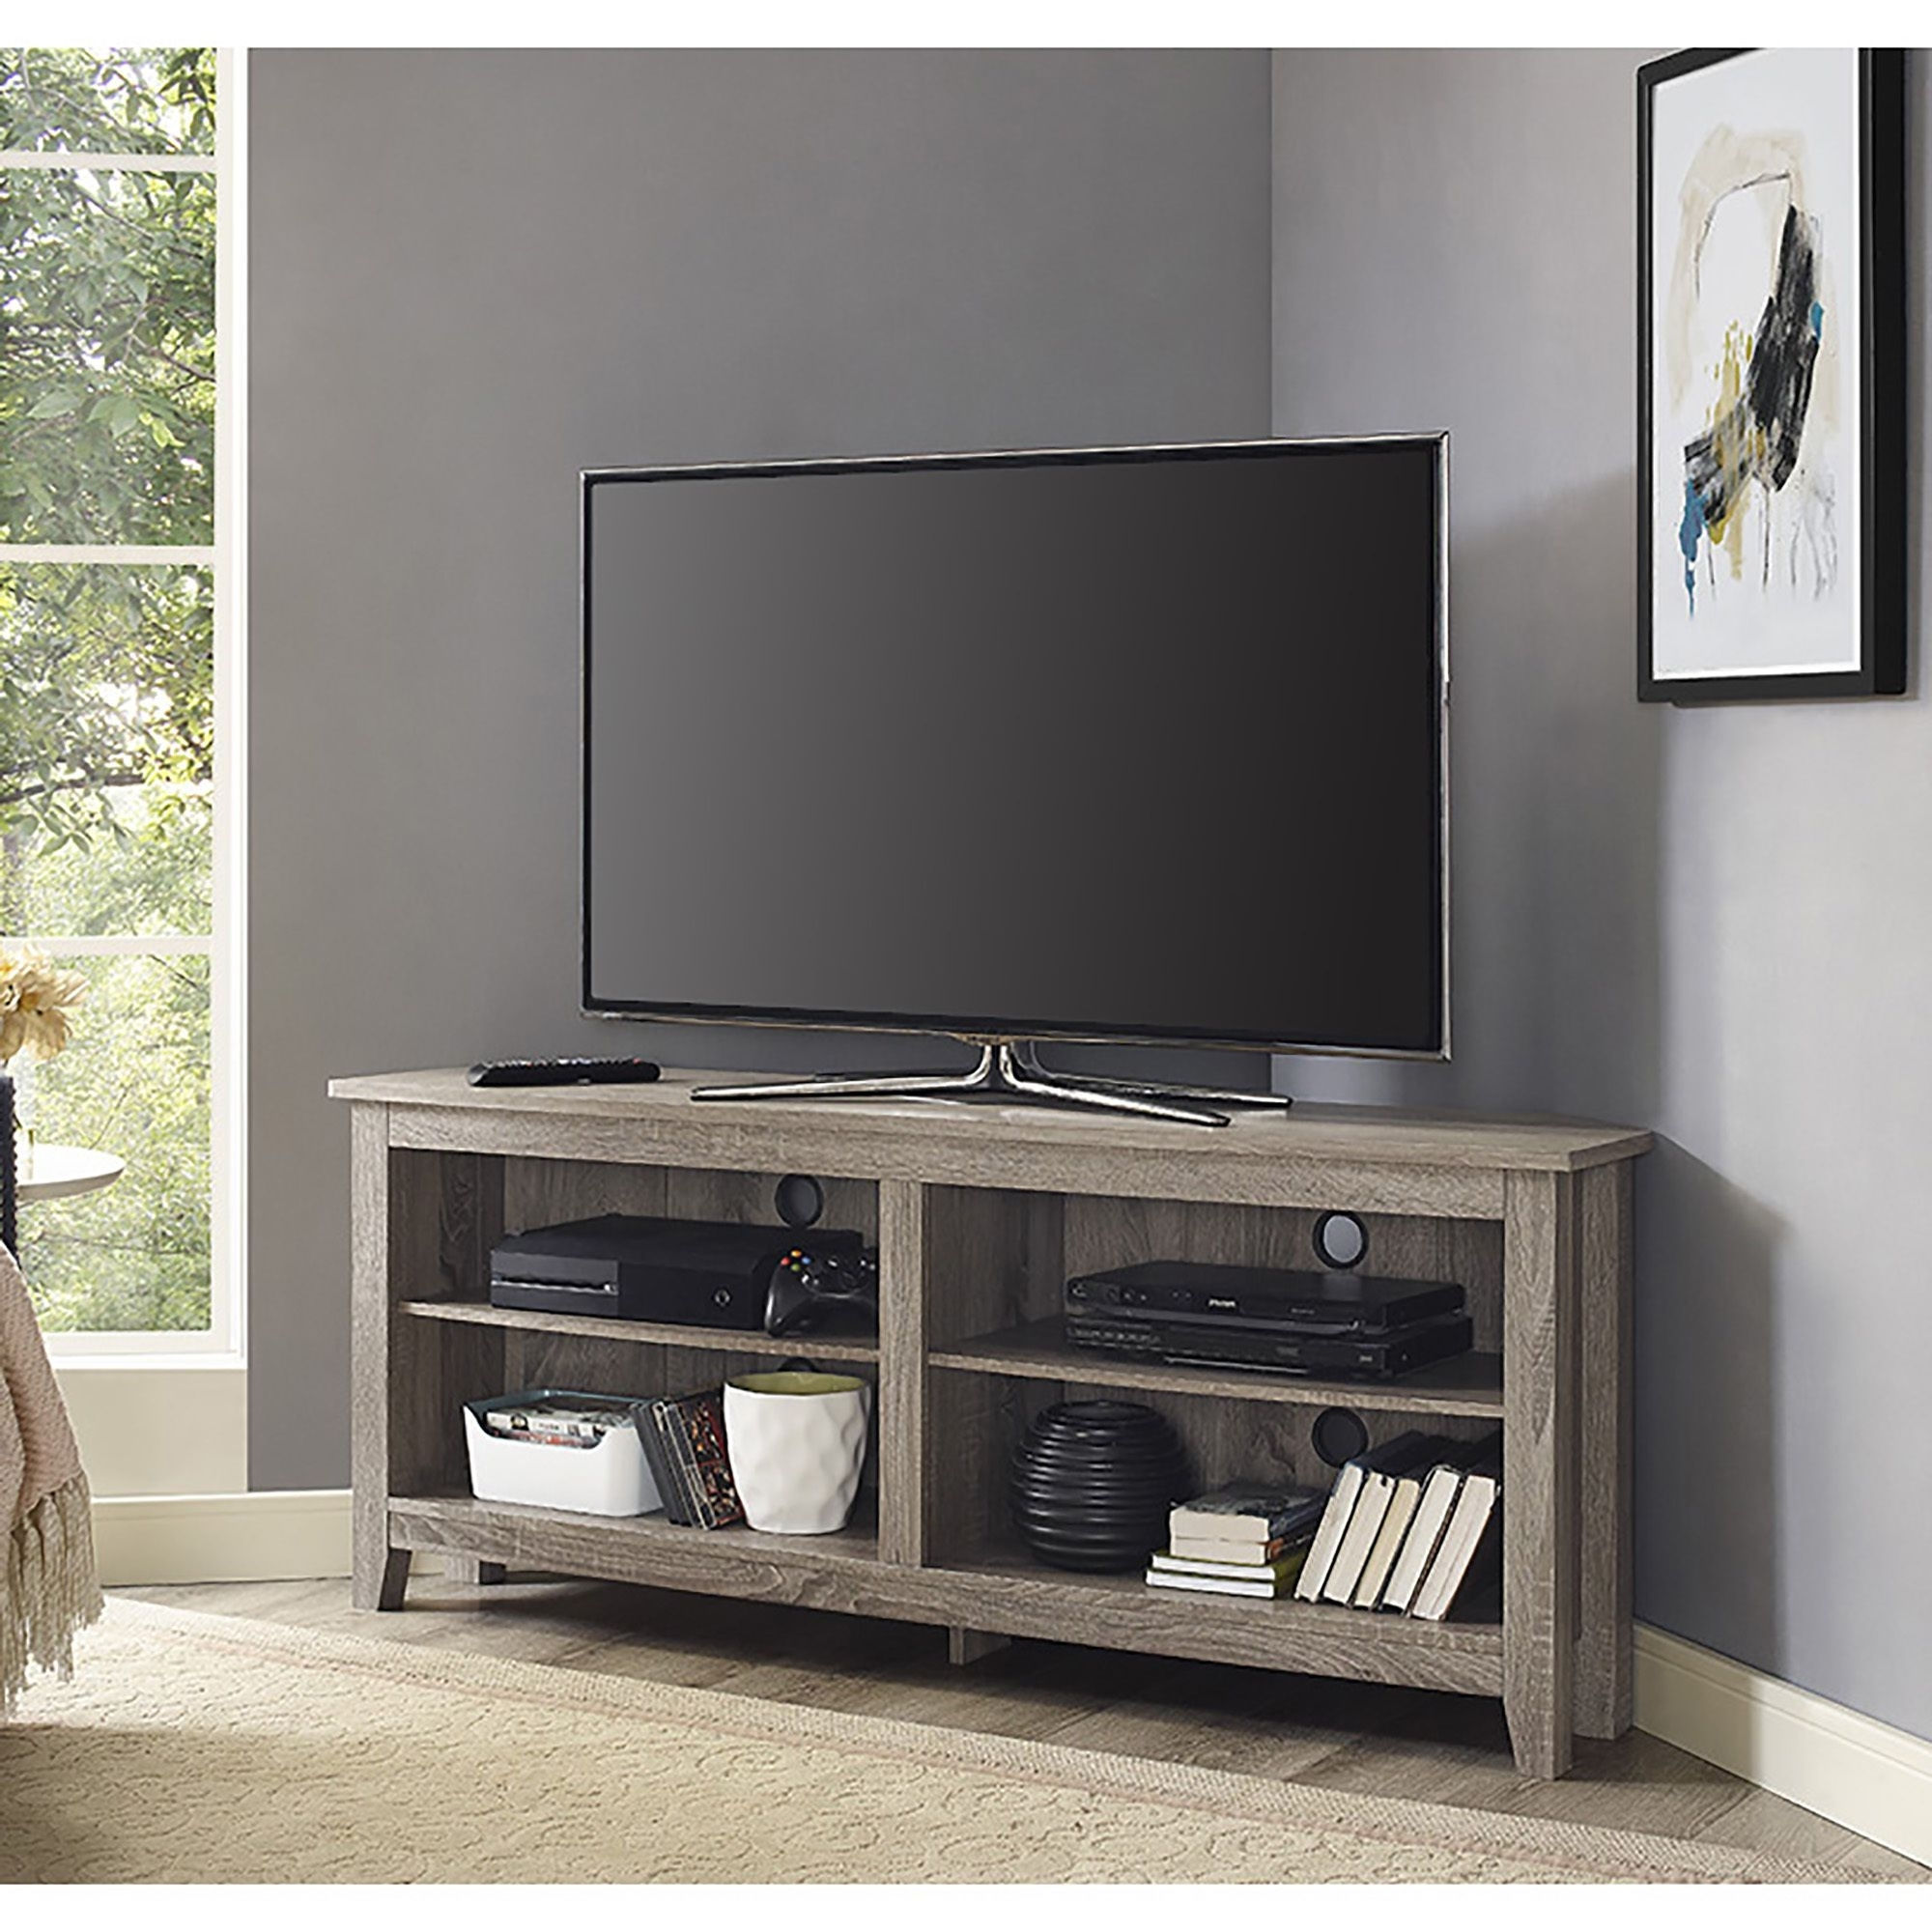 58 Inch Corner Tv Stand – Driftwood (58 Corner Tv Stand Pertaining To Most Recent Tv Corner Shelf Unit (View 9 of 15)